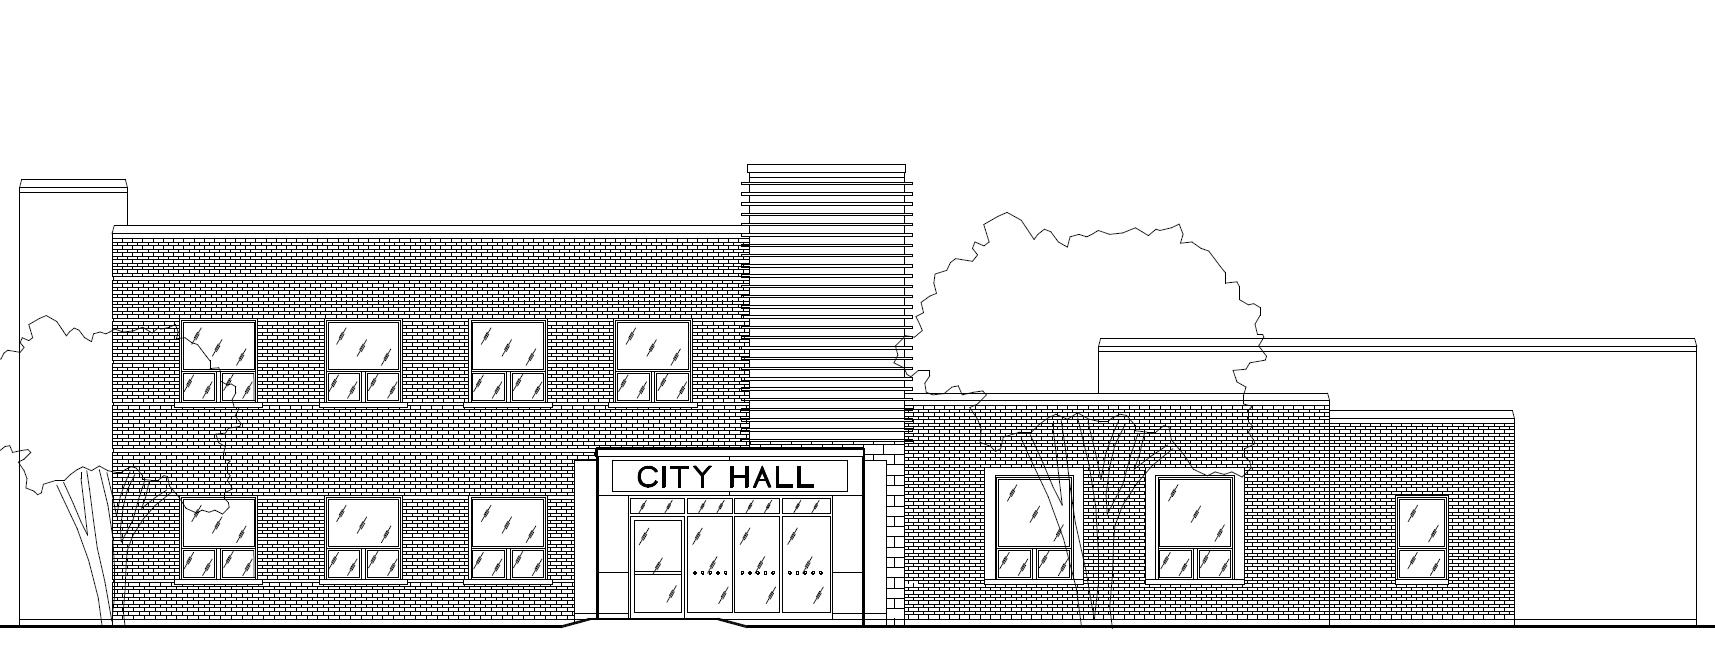 Elevation drawing of City Hall with elevator and vestibule.